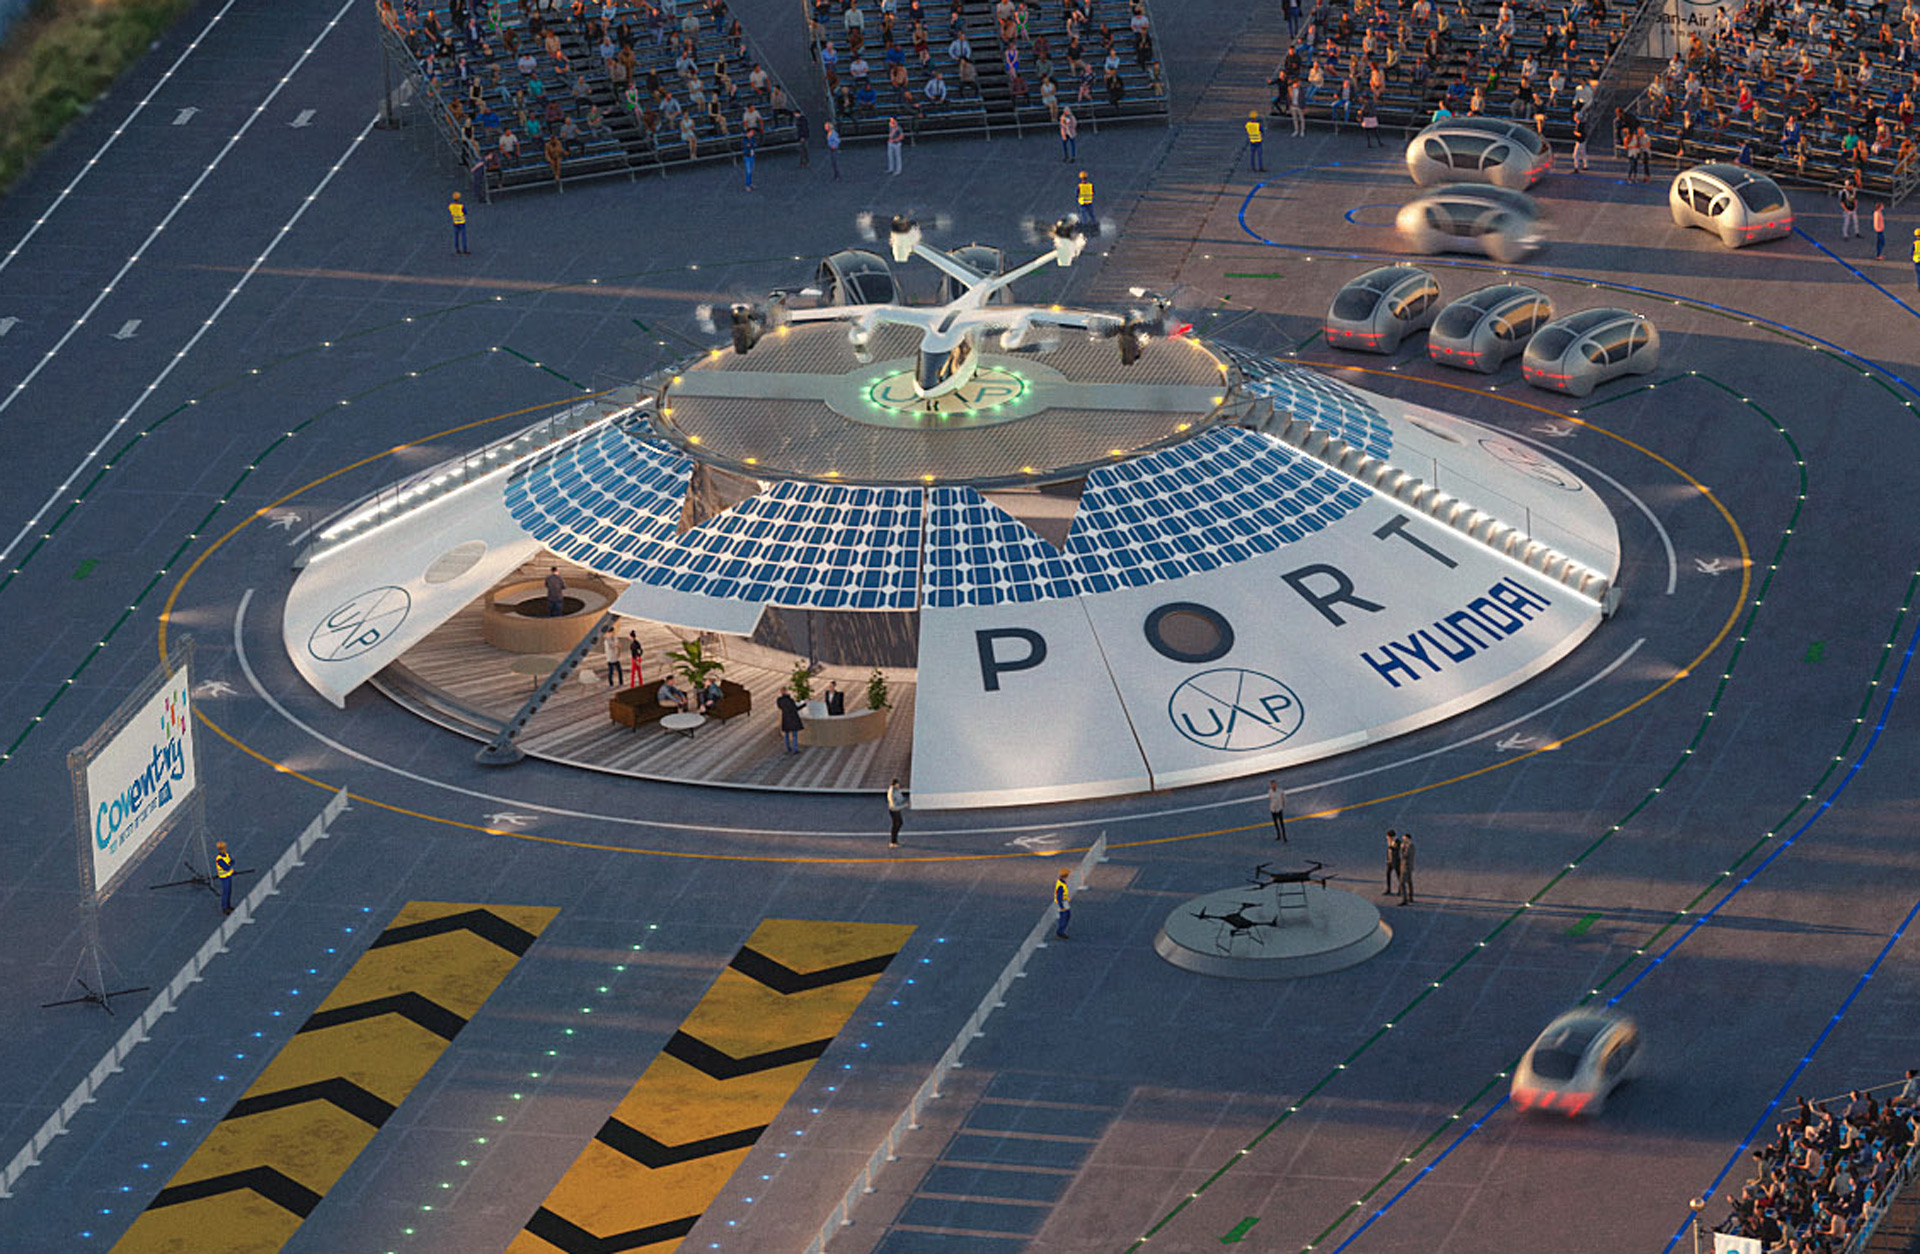 In the future, flying taxis could take off and land at urban airports much like this